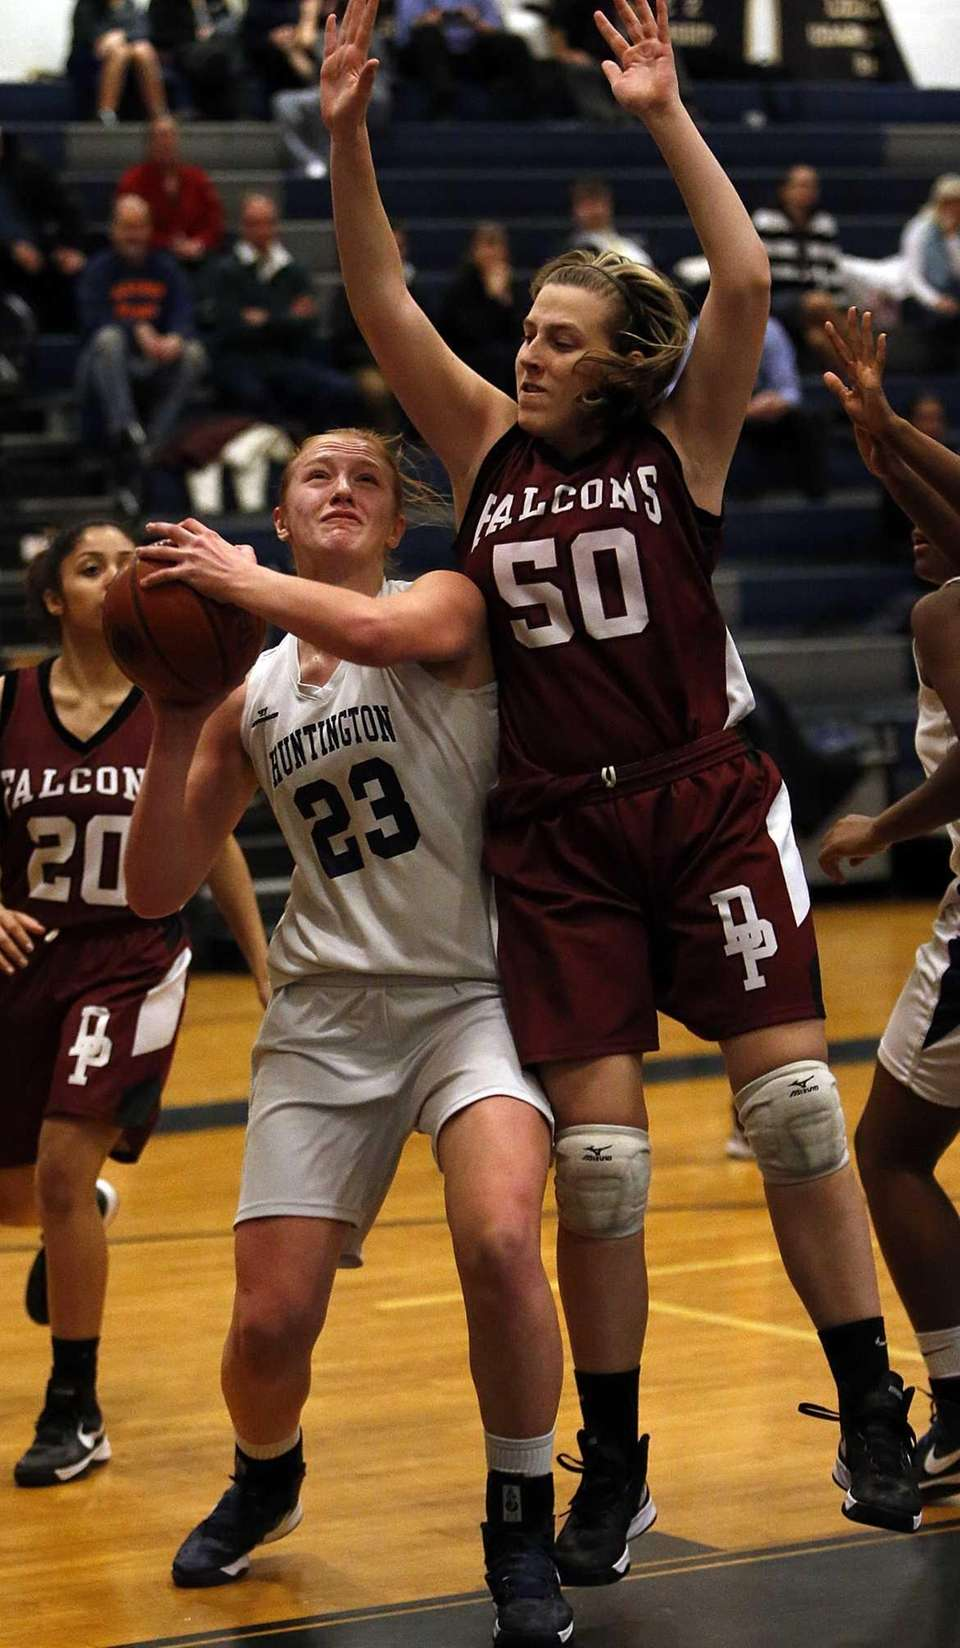 Huntington's Heather Forster (23) is fouled by Deer